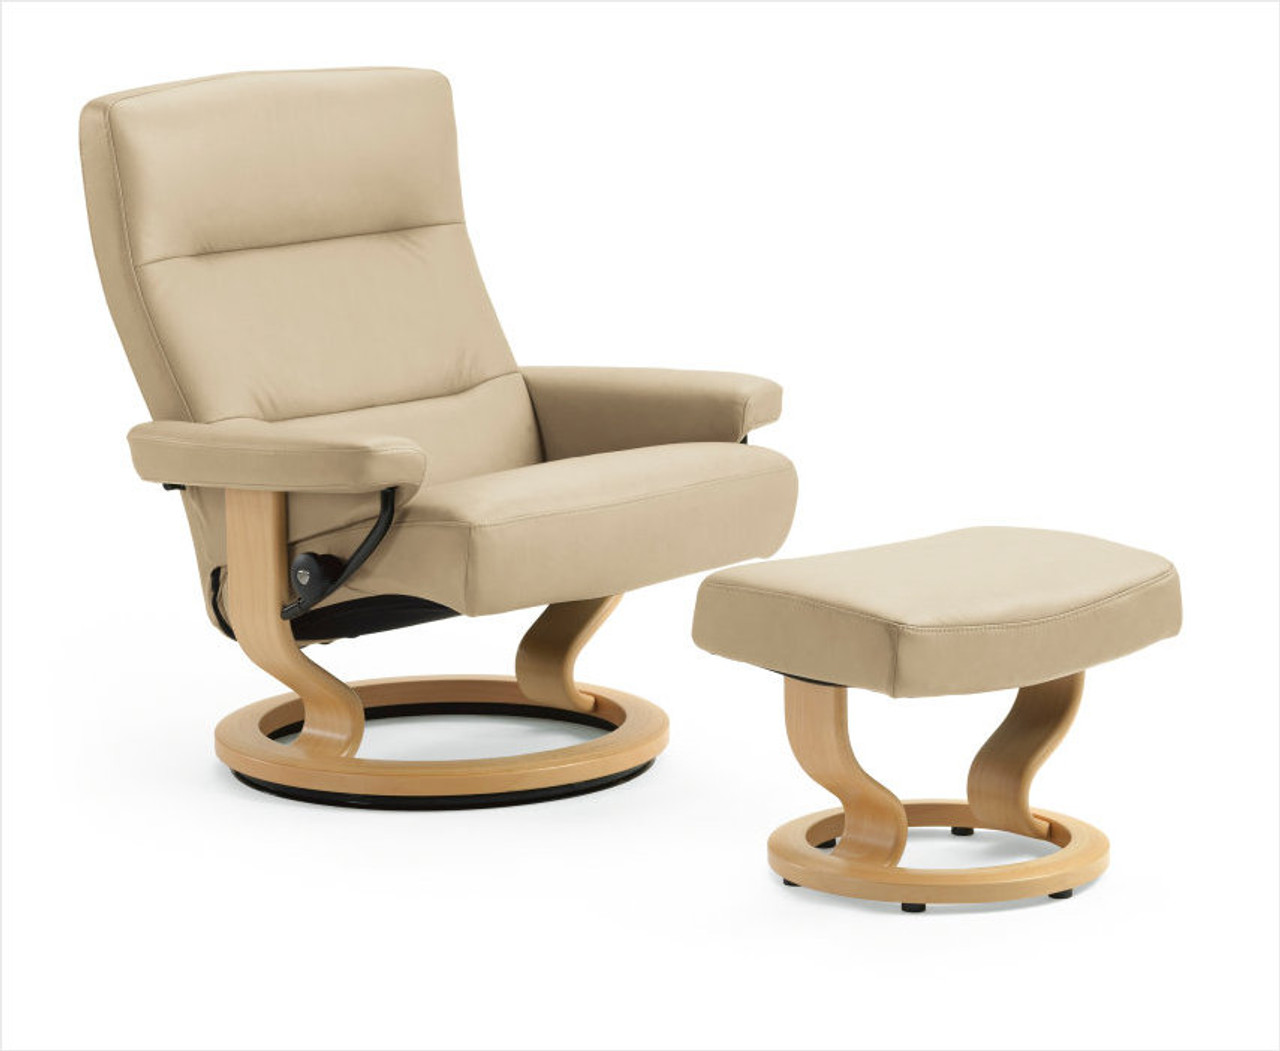 ekornes stressless pacific recliners clearance models